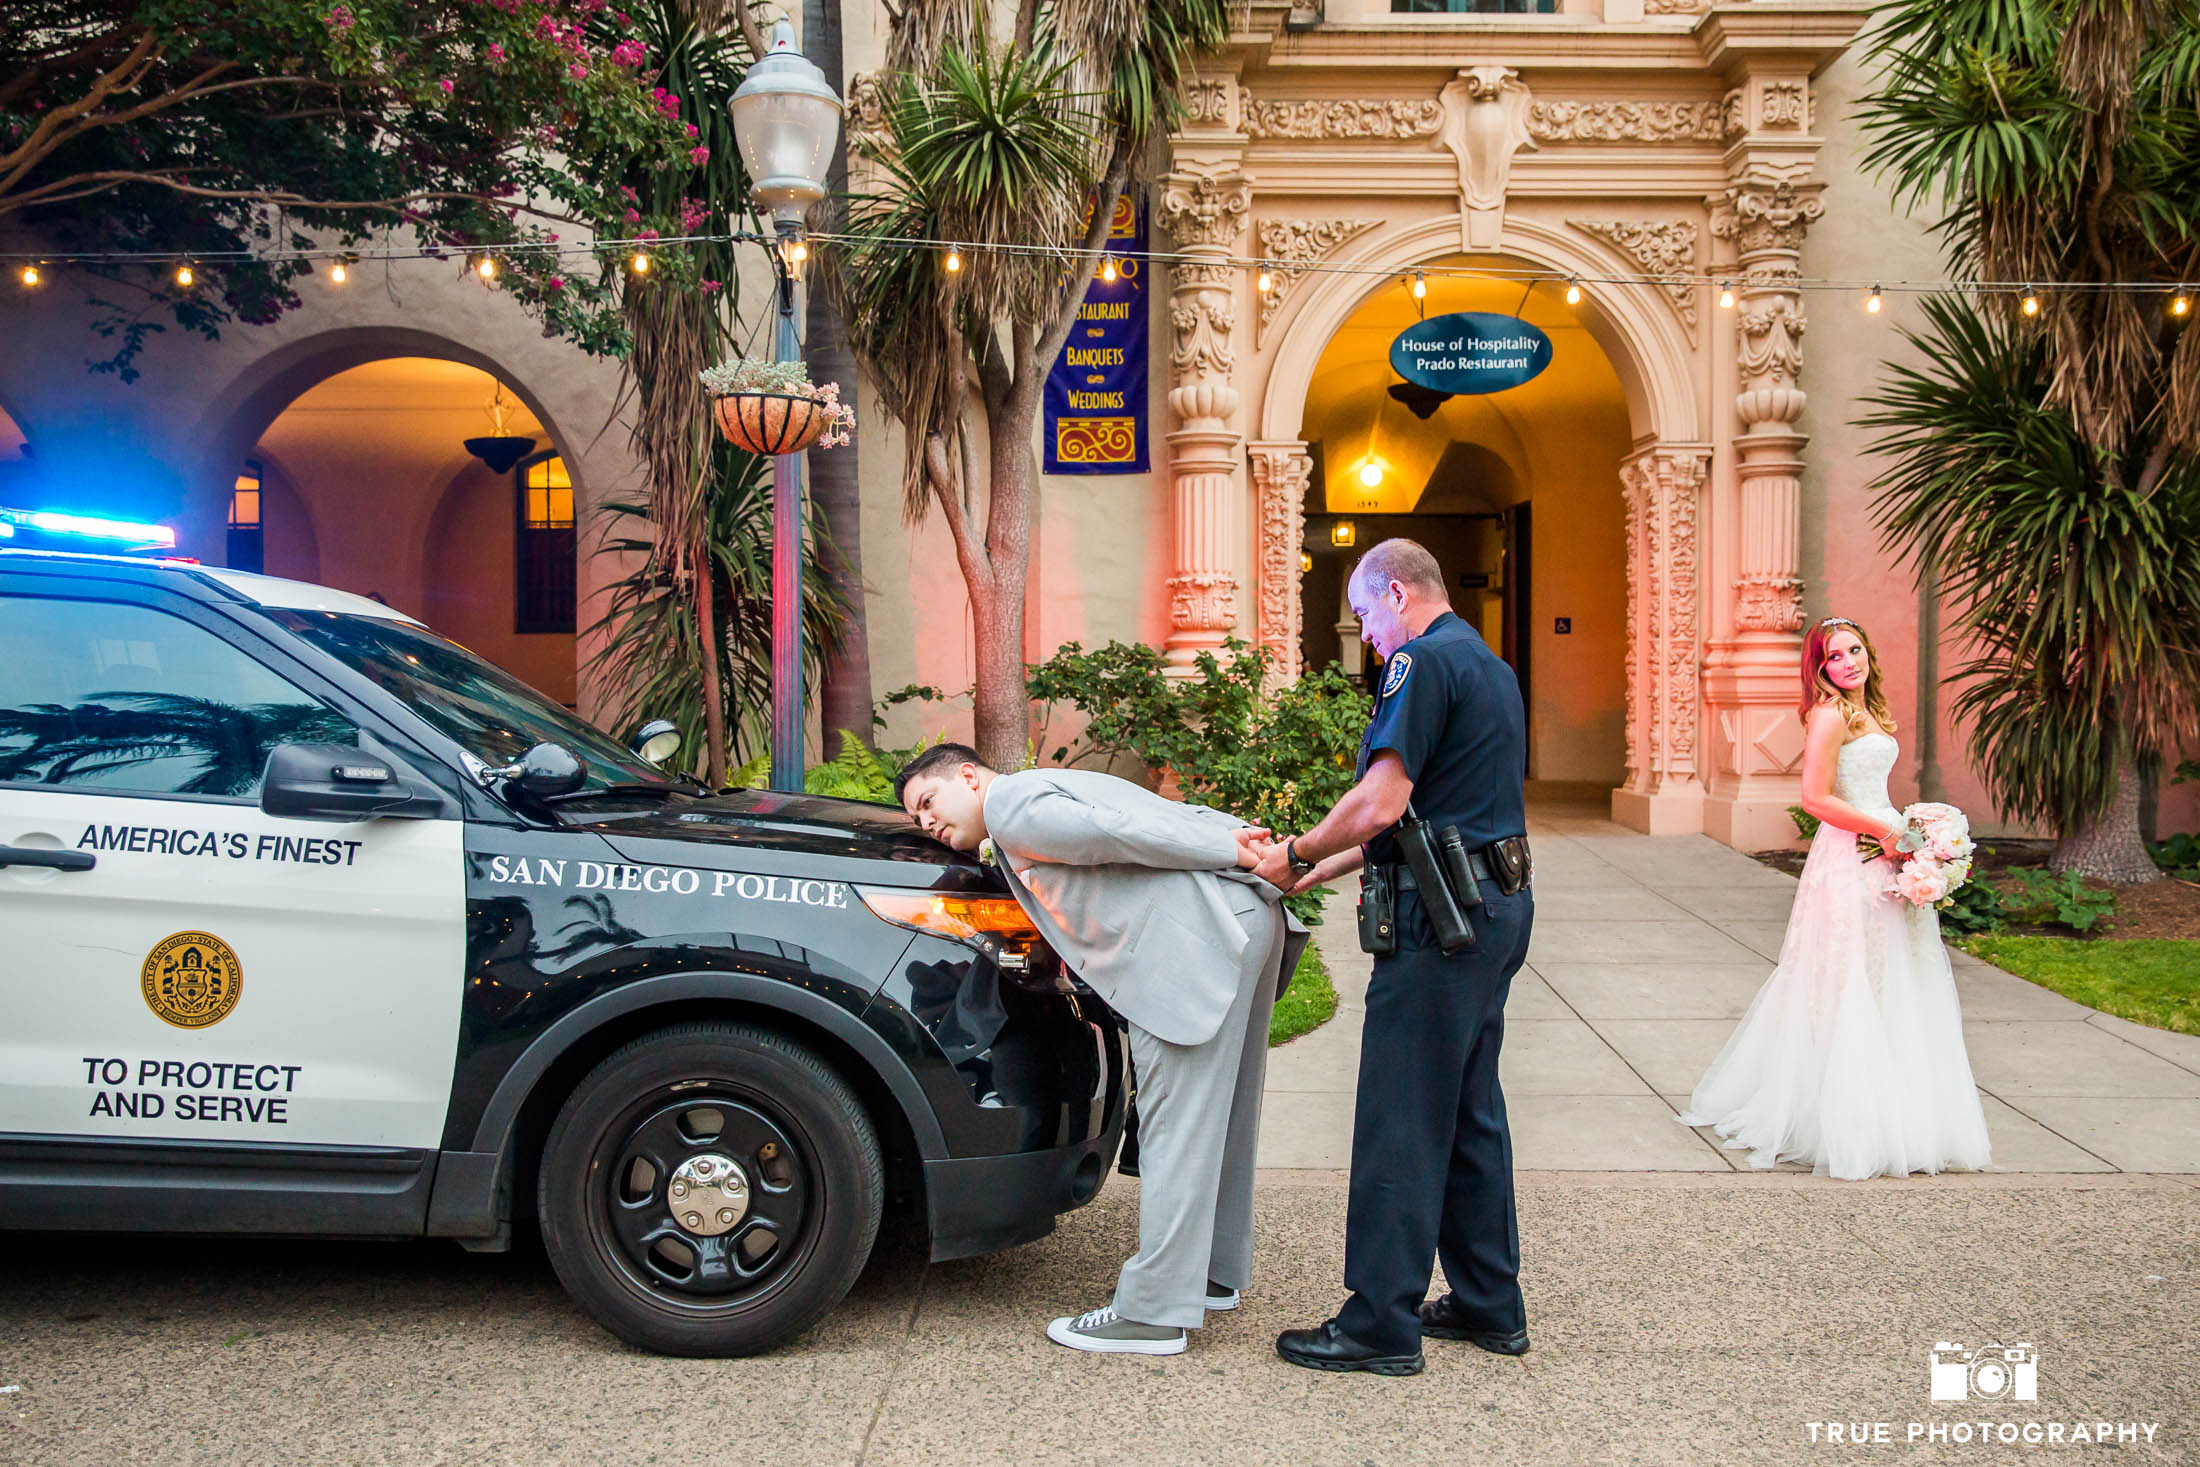 Funny photo of Groom getting handcuffed and arrested